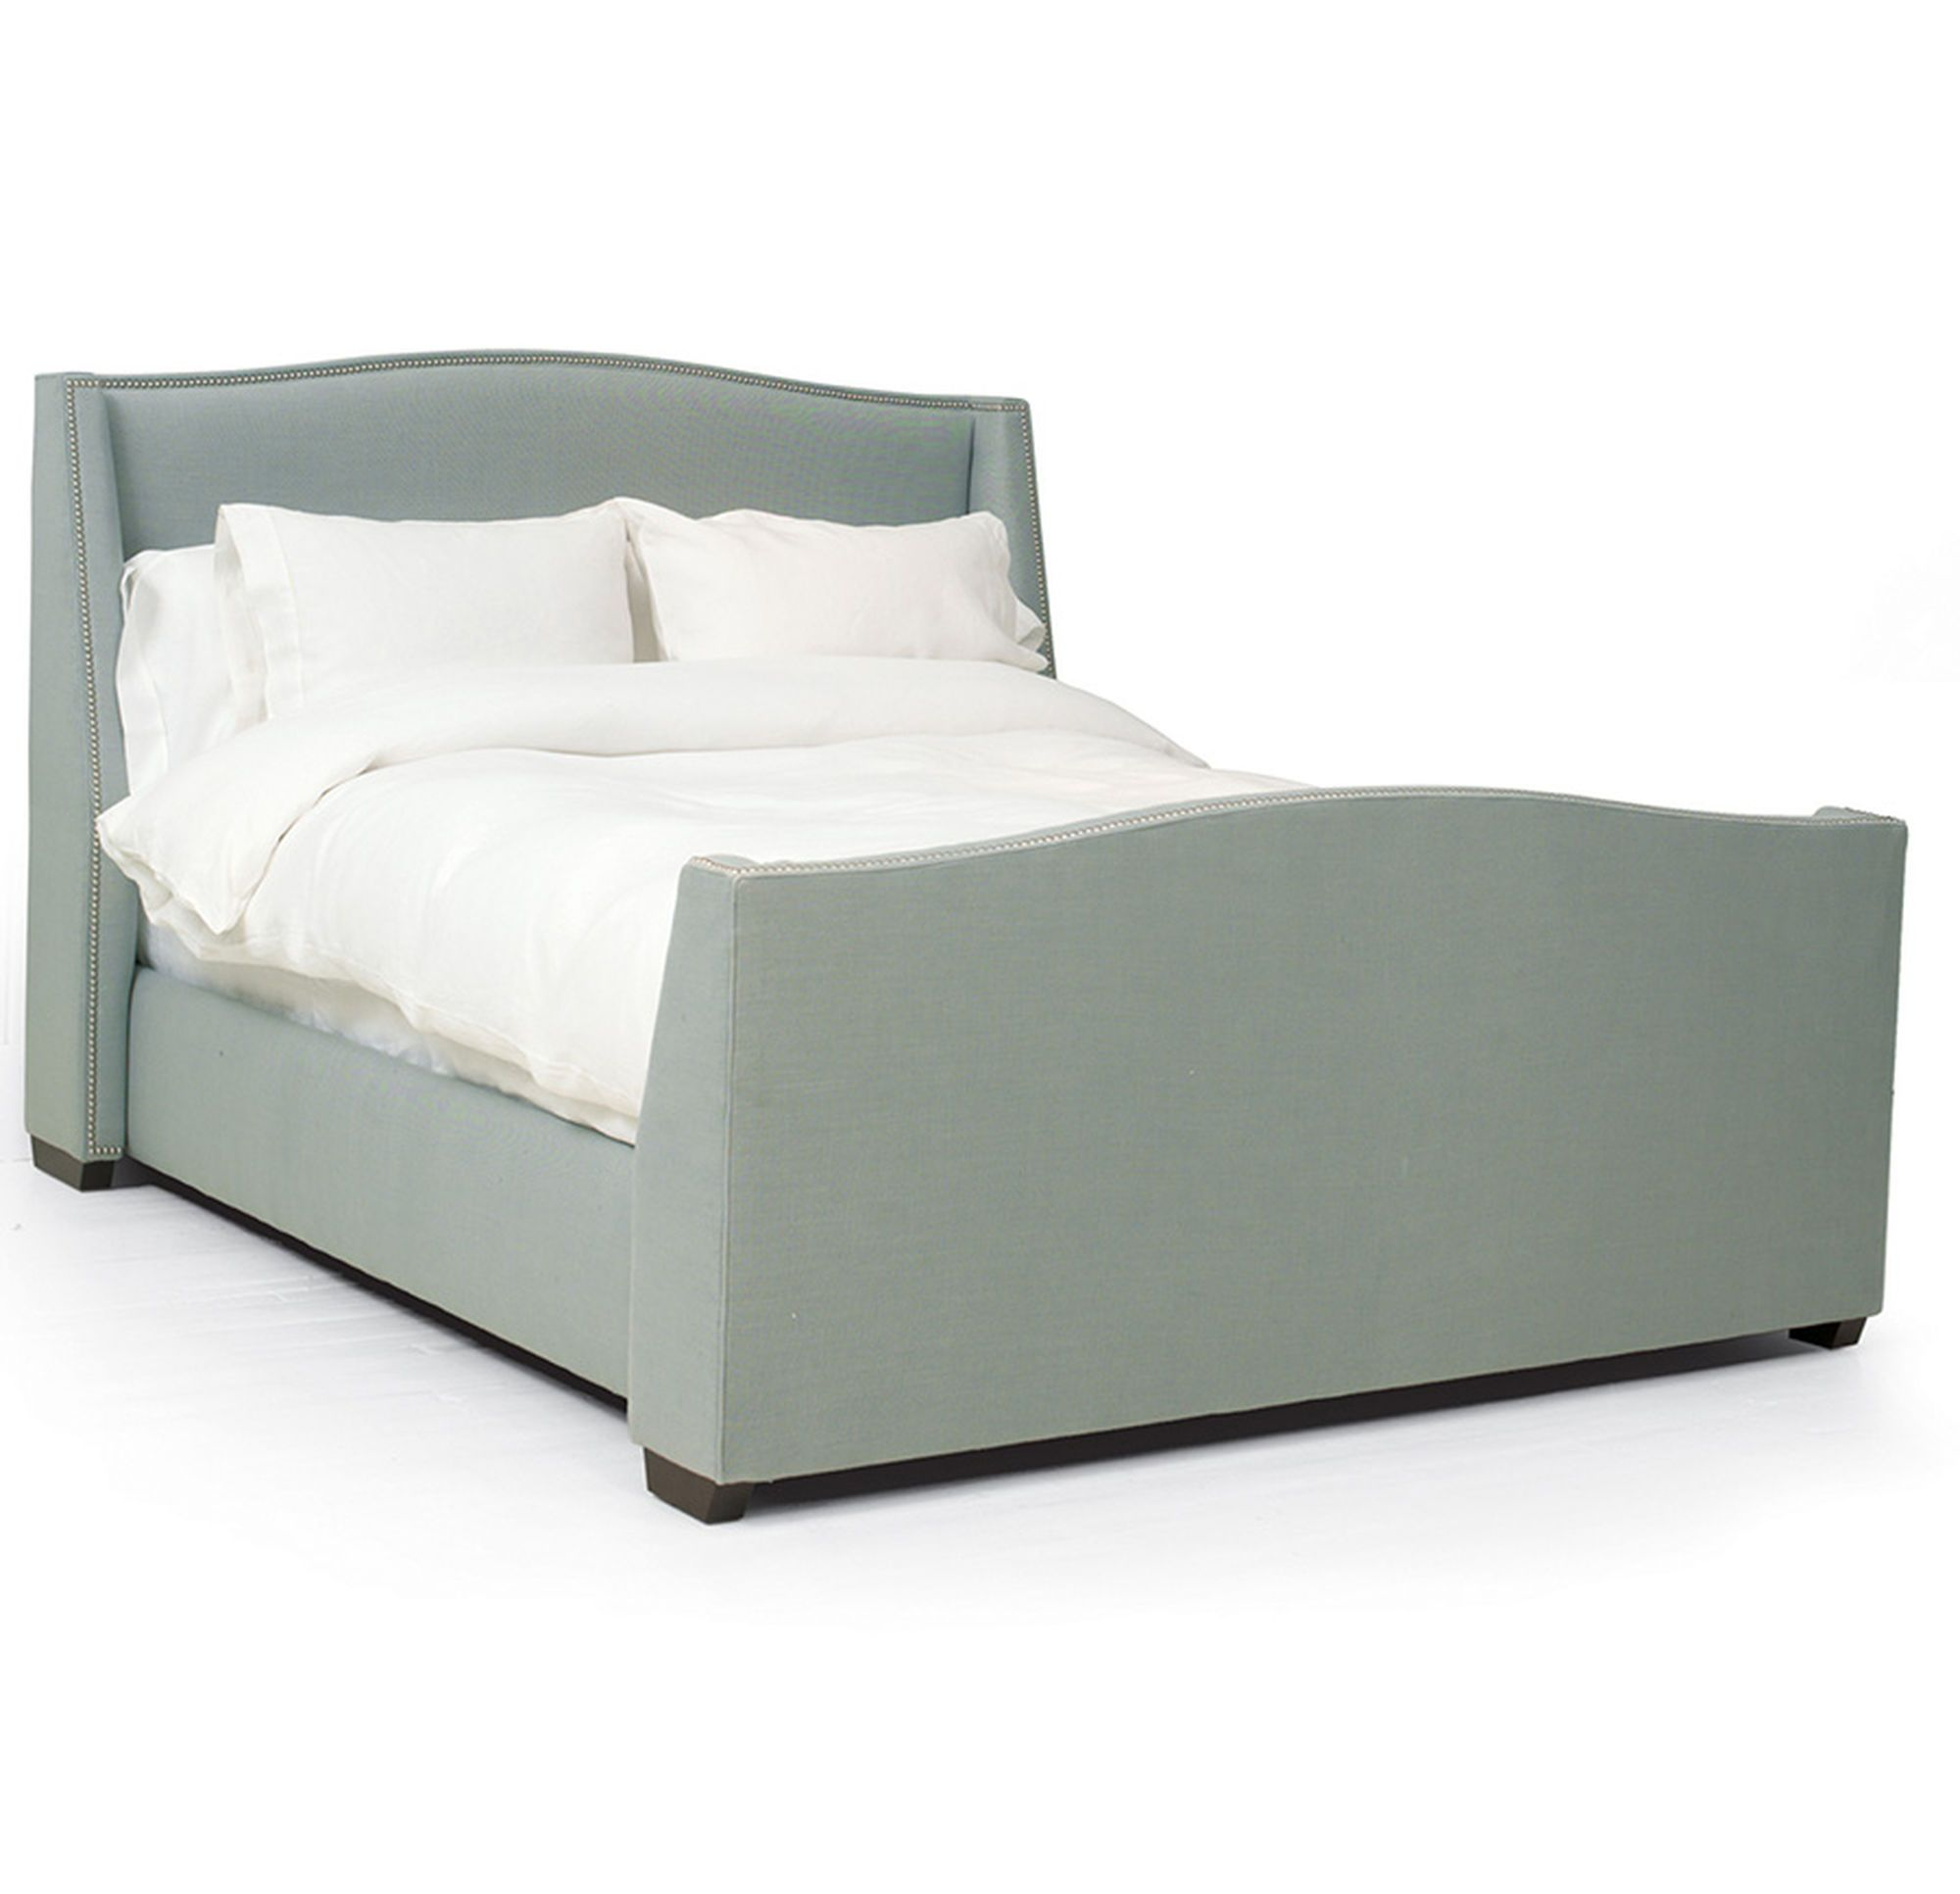 celina queen grand bed combo hi res 762 bedroom pinterest